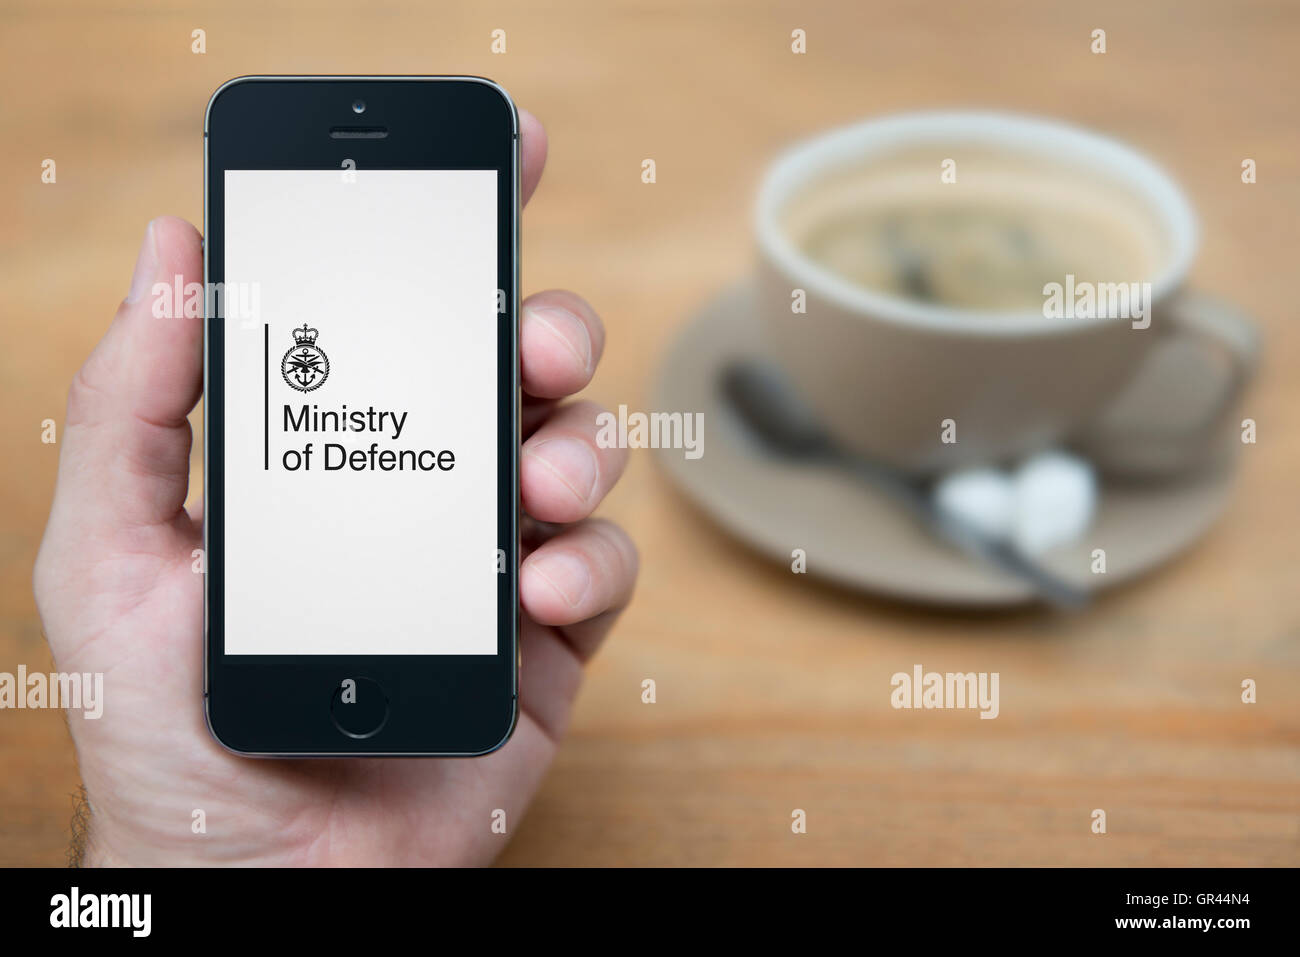 A man looks at his iPhone which displays the UK Government Ministry of Defence MoD logo (Editorial use only). - Stock Image